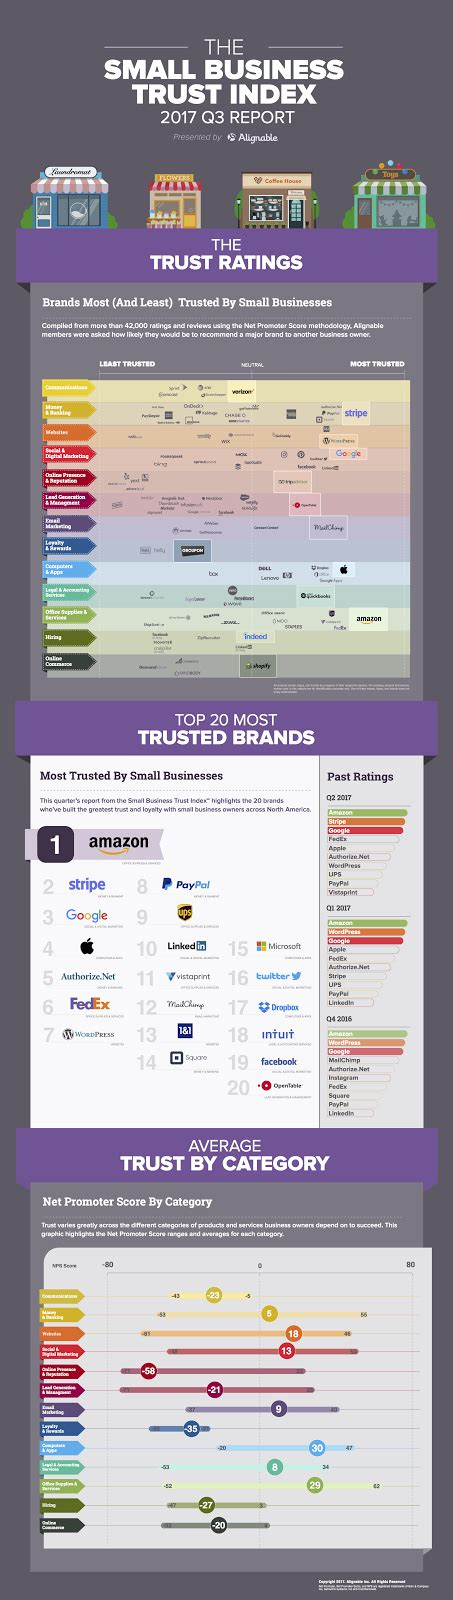 Top 20 Most Trusted Brands In Small Business — Alignable